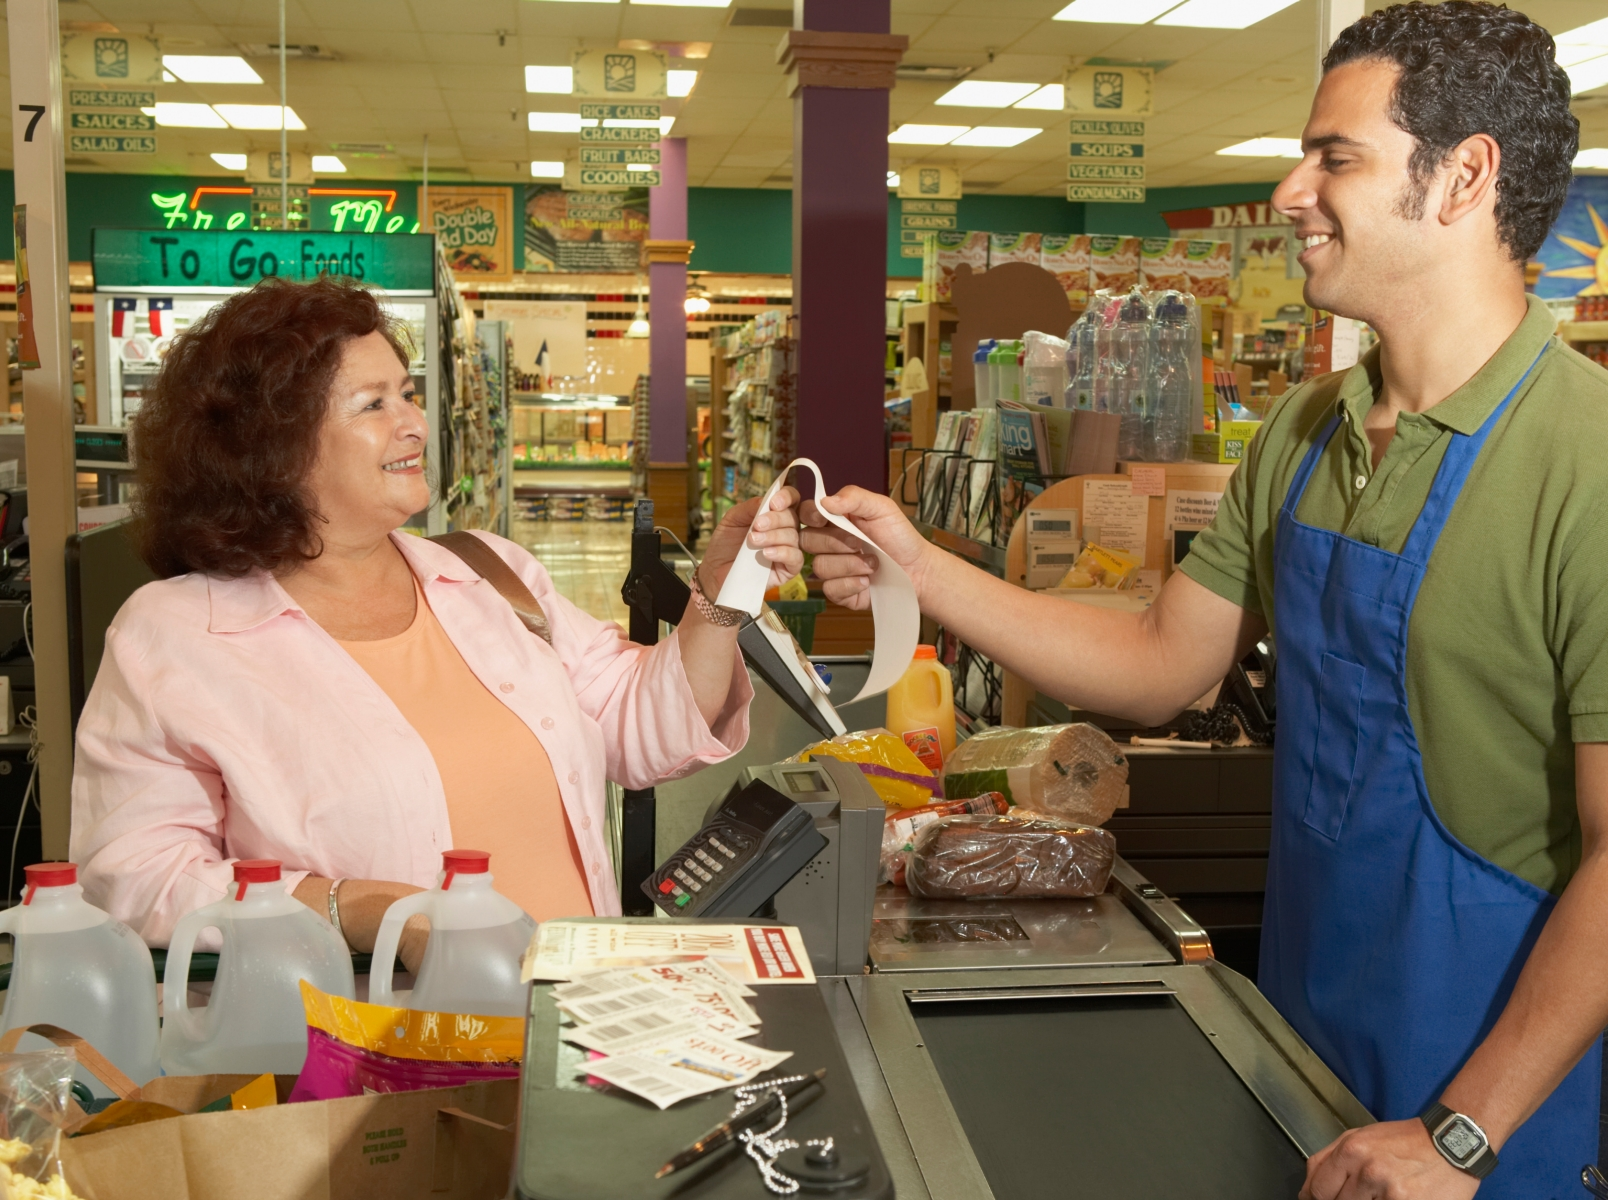 Candy At The Cash Register A Risk Factor For Obesity And